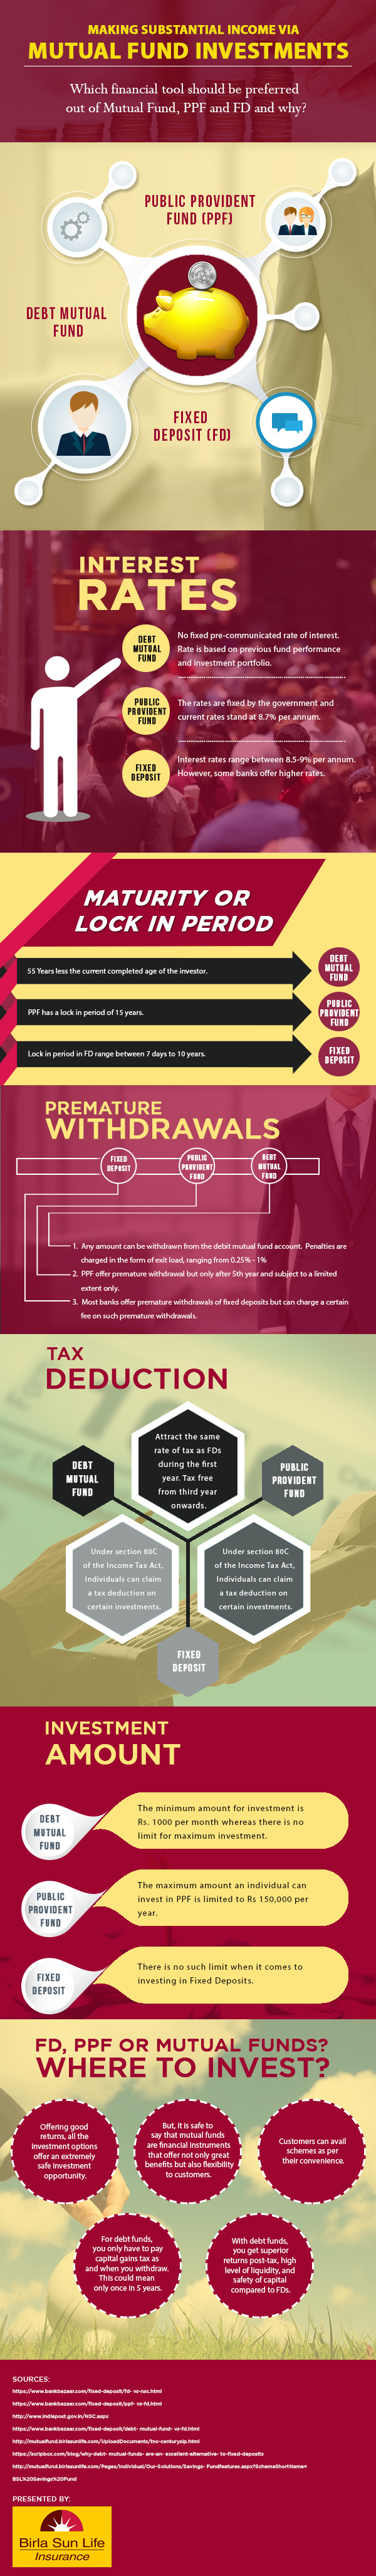 Pin by Preeti Kapoor on Insurance | Insurance industry ...